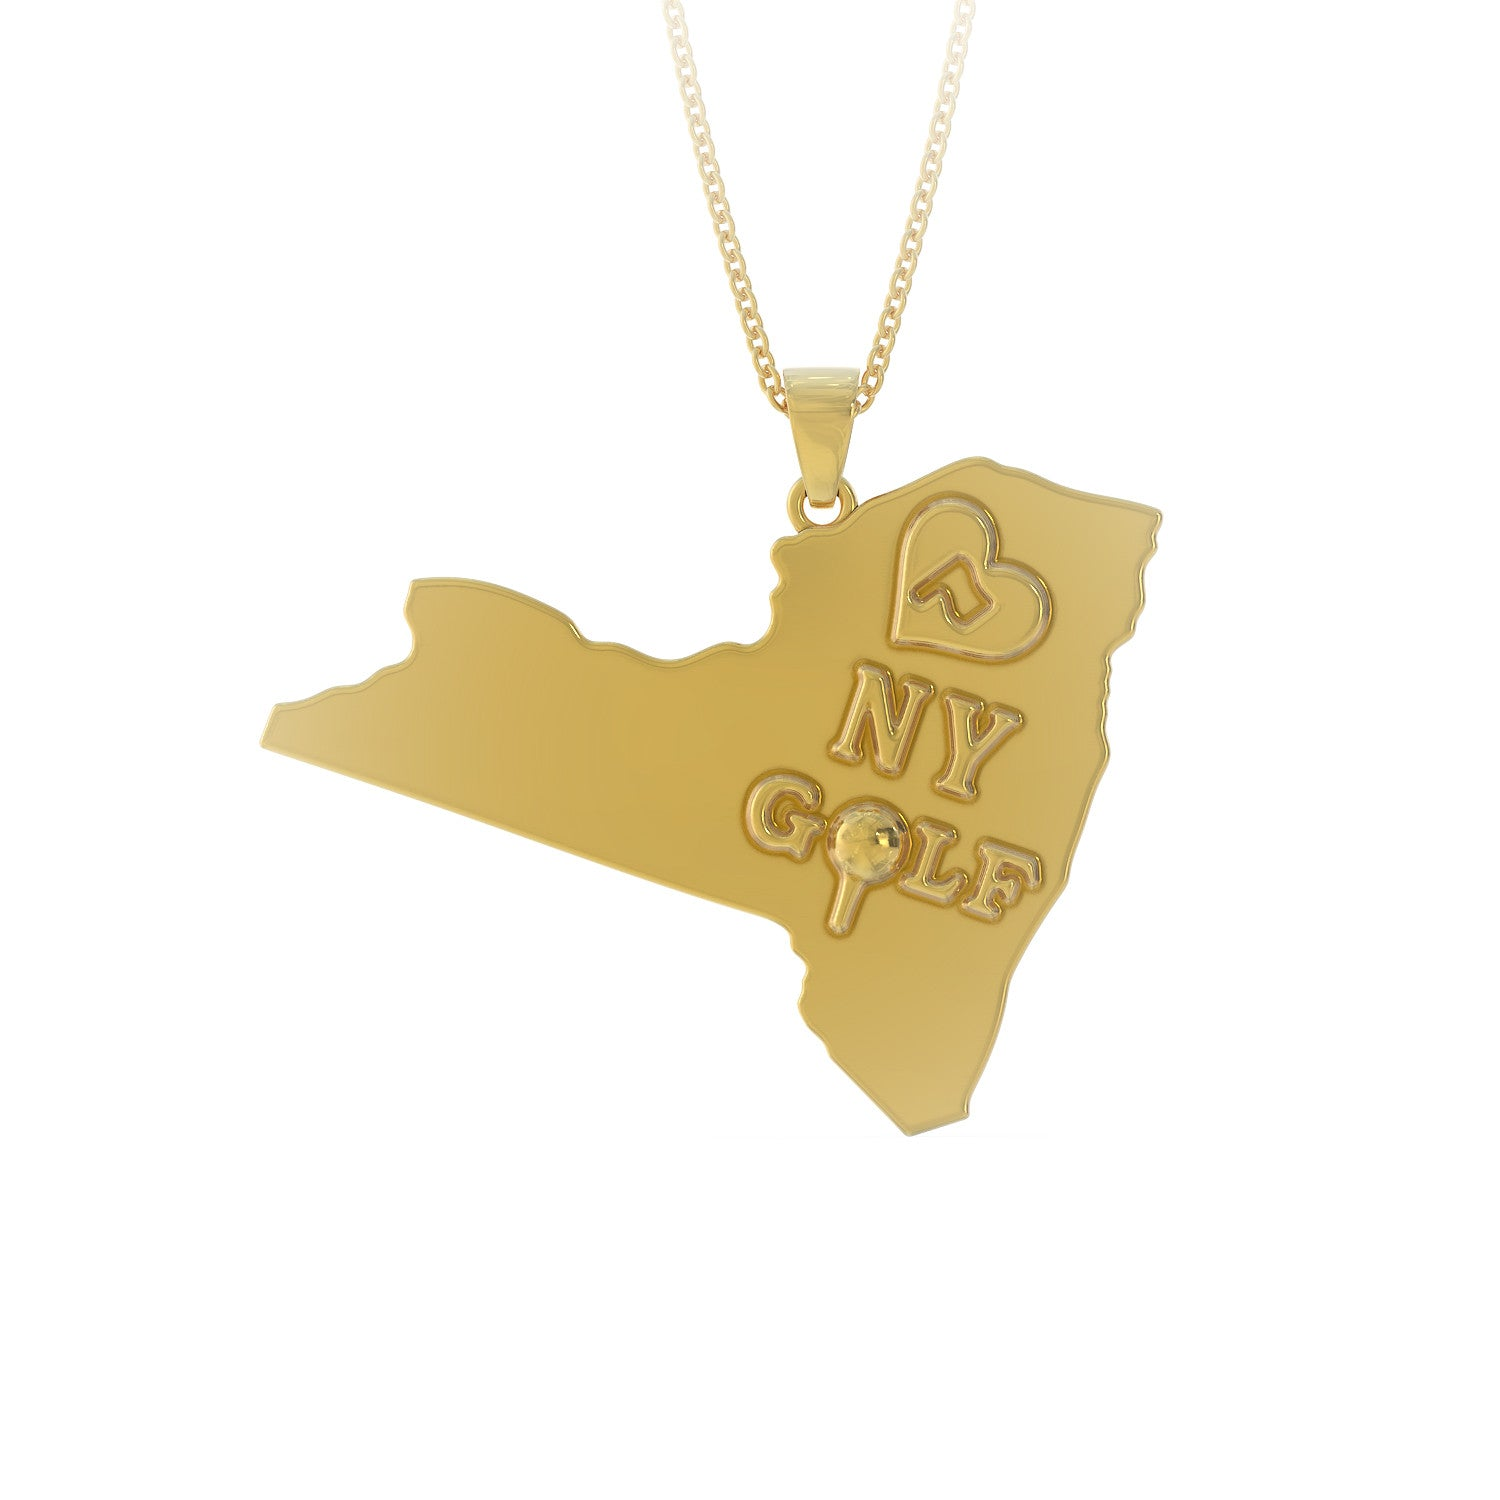 Love New York Golf Necklace